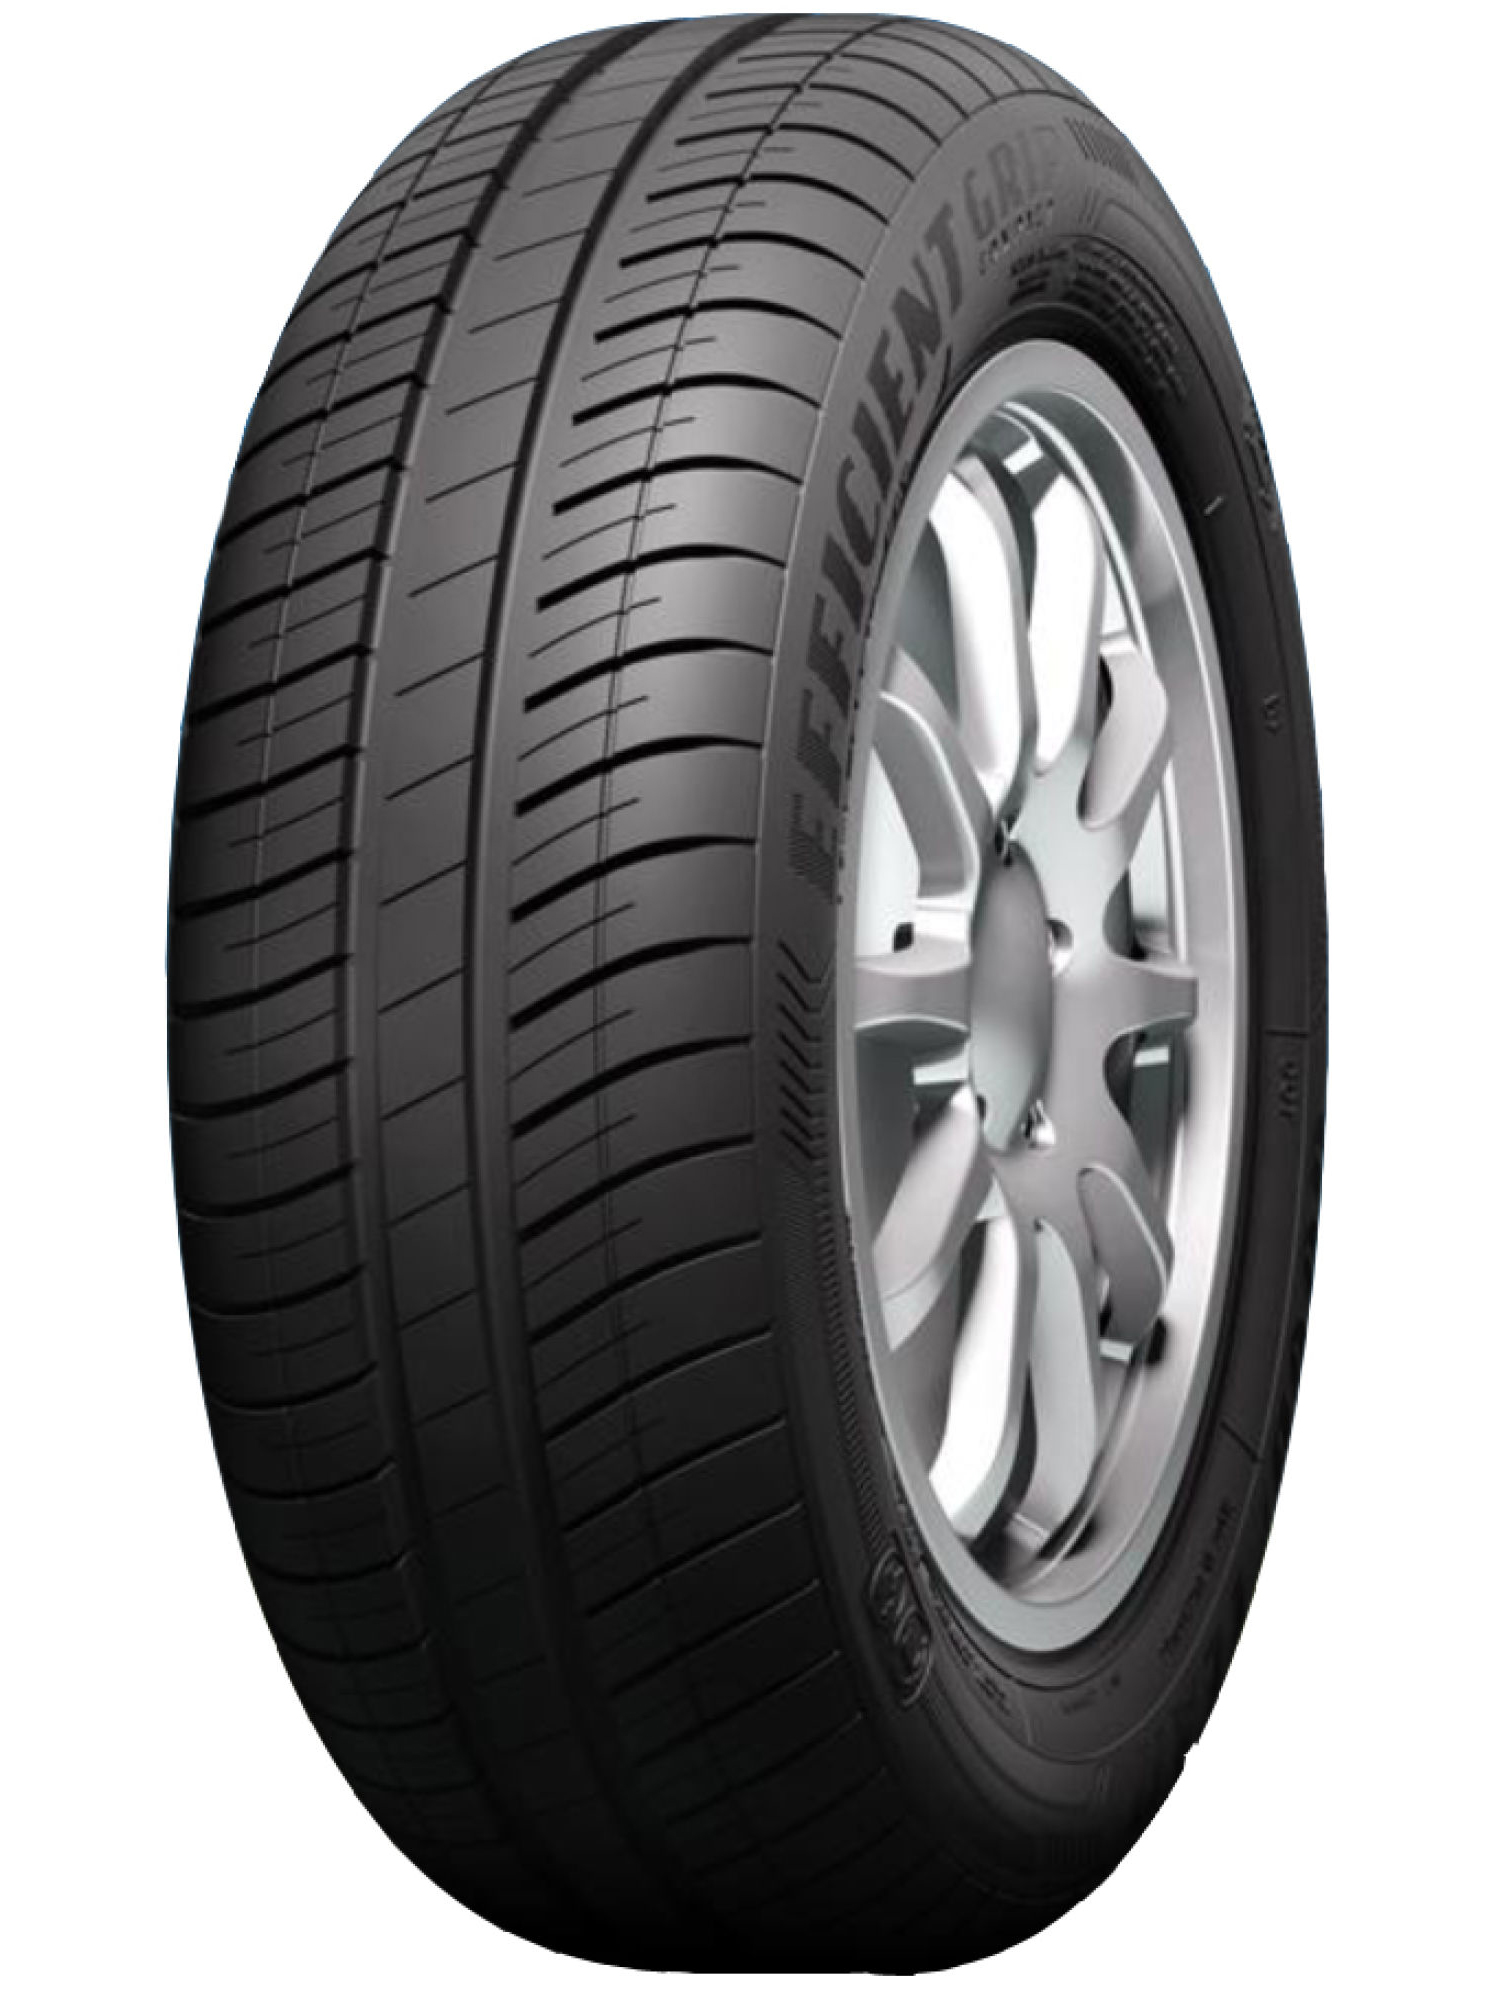 Anvelopa vara GOODYEAR EfficientGrip Compact 175/70 R14 84T